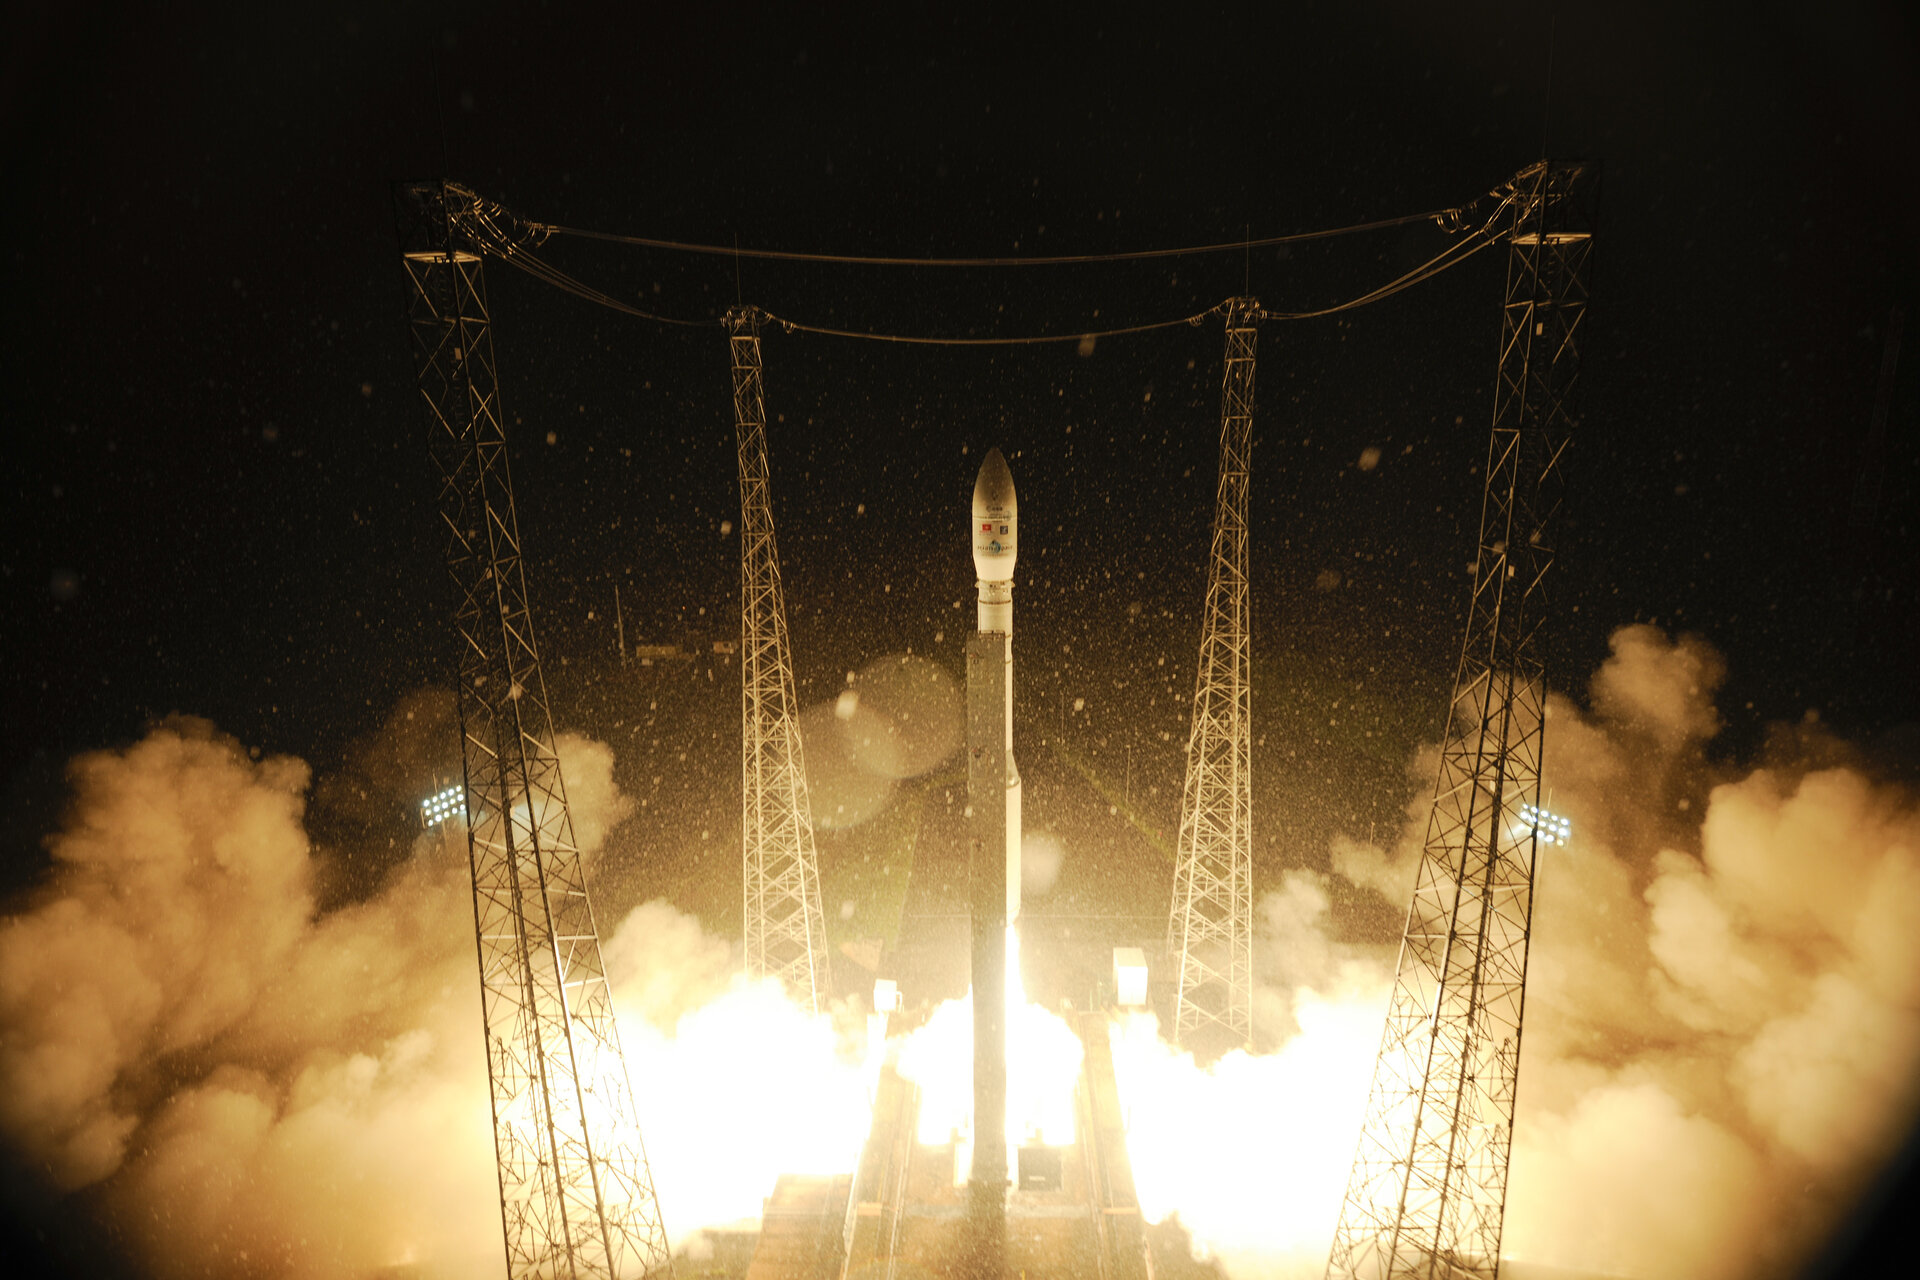 ESA's Vega launcher scores new success with Proba-V